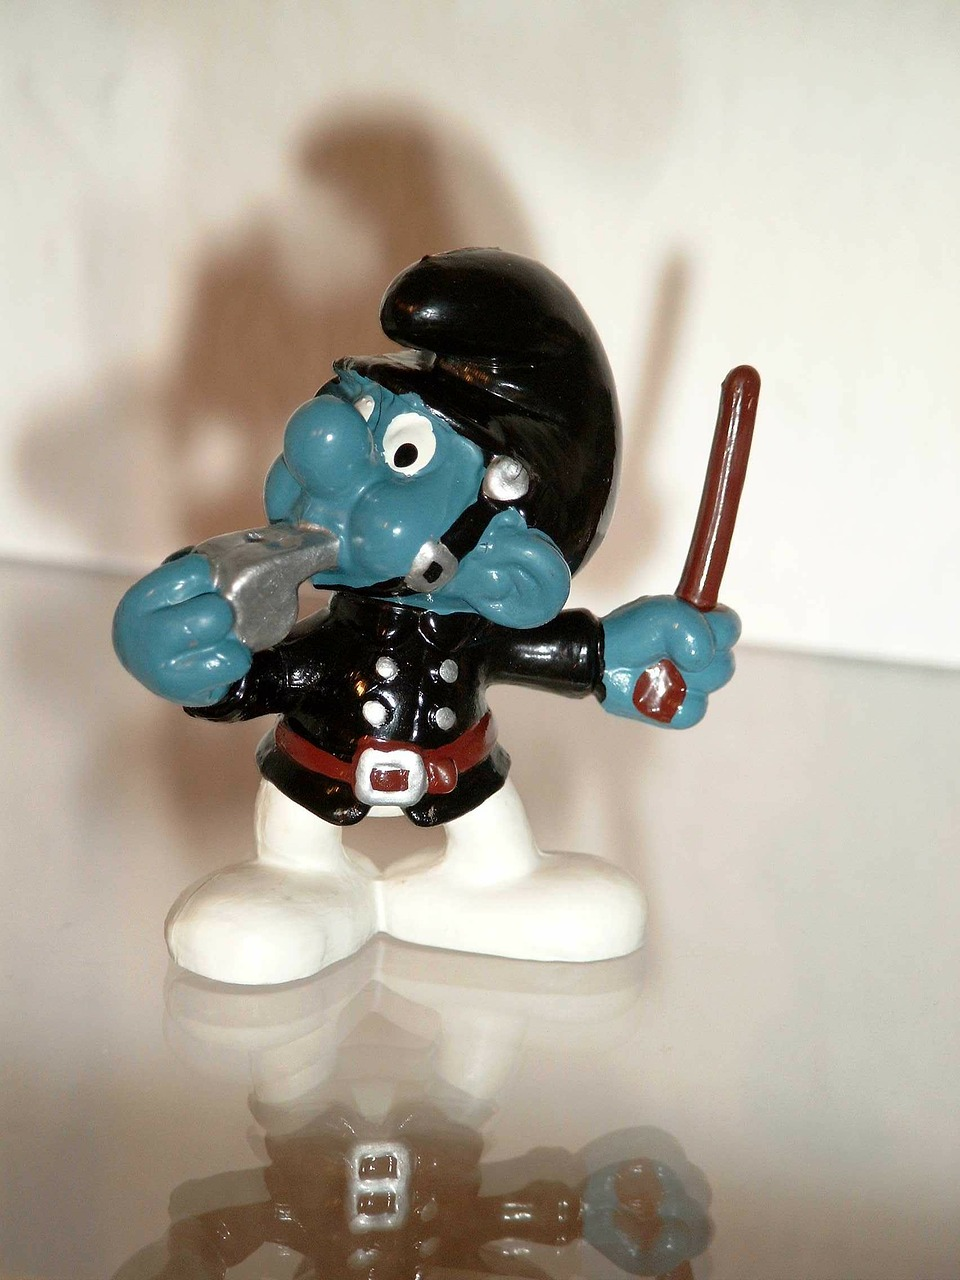 smurf constable uniform free photo